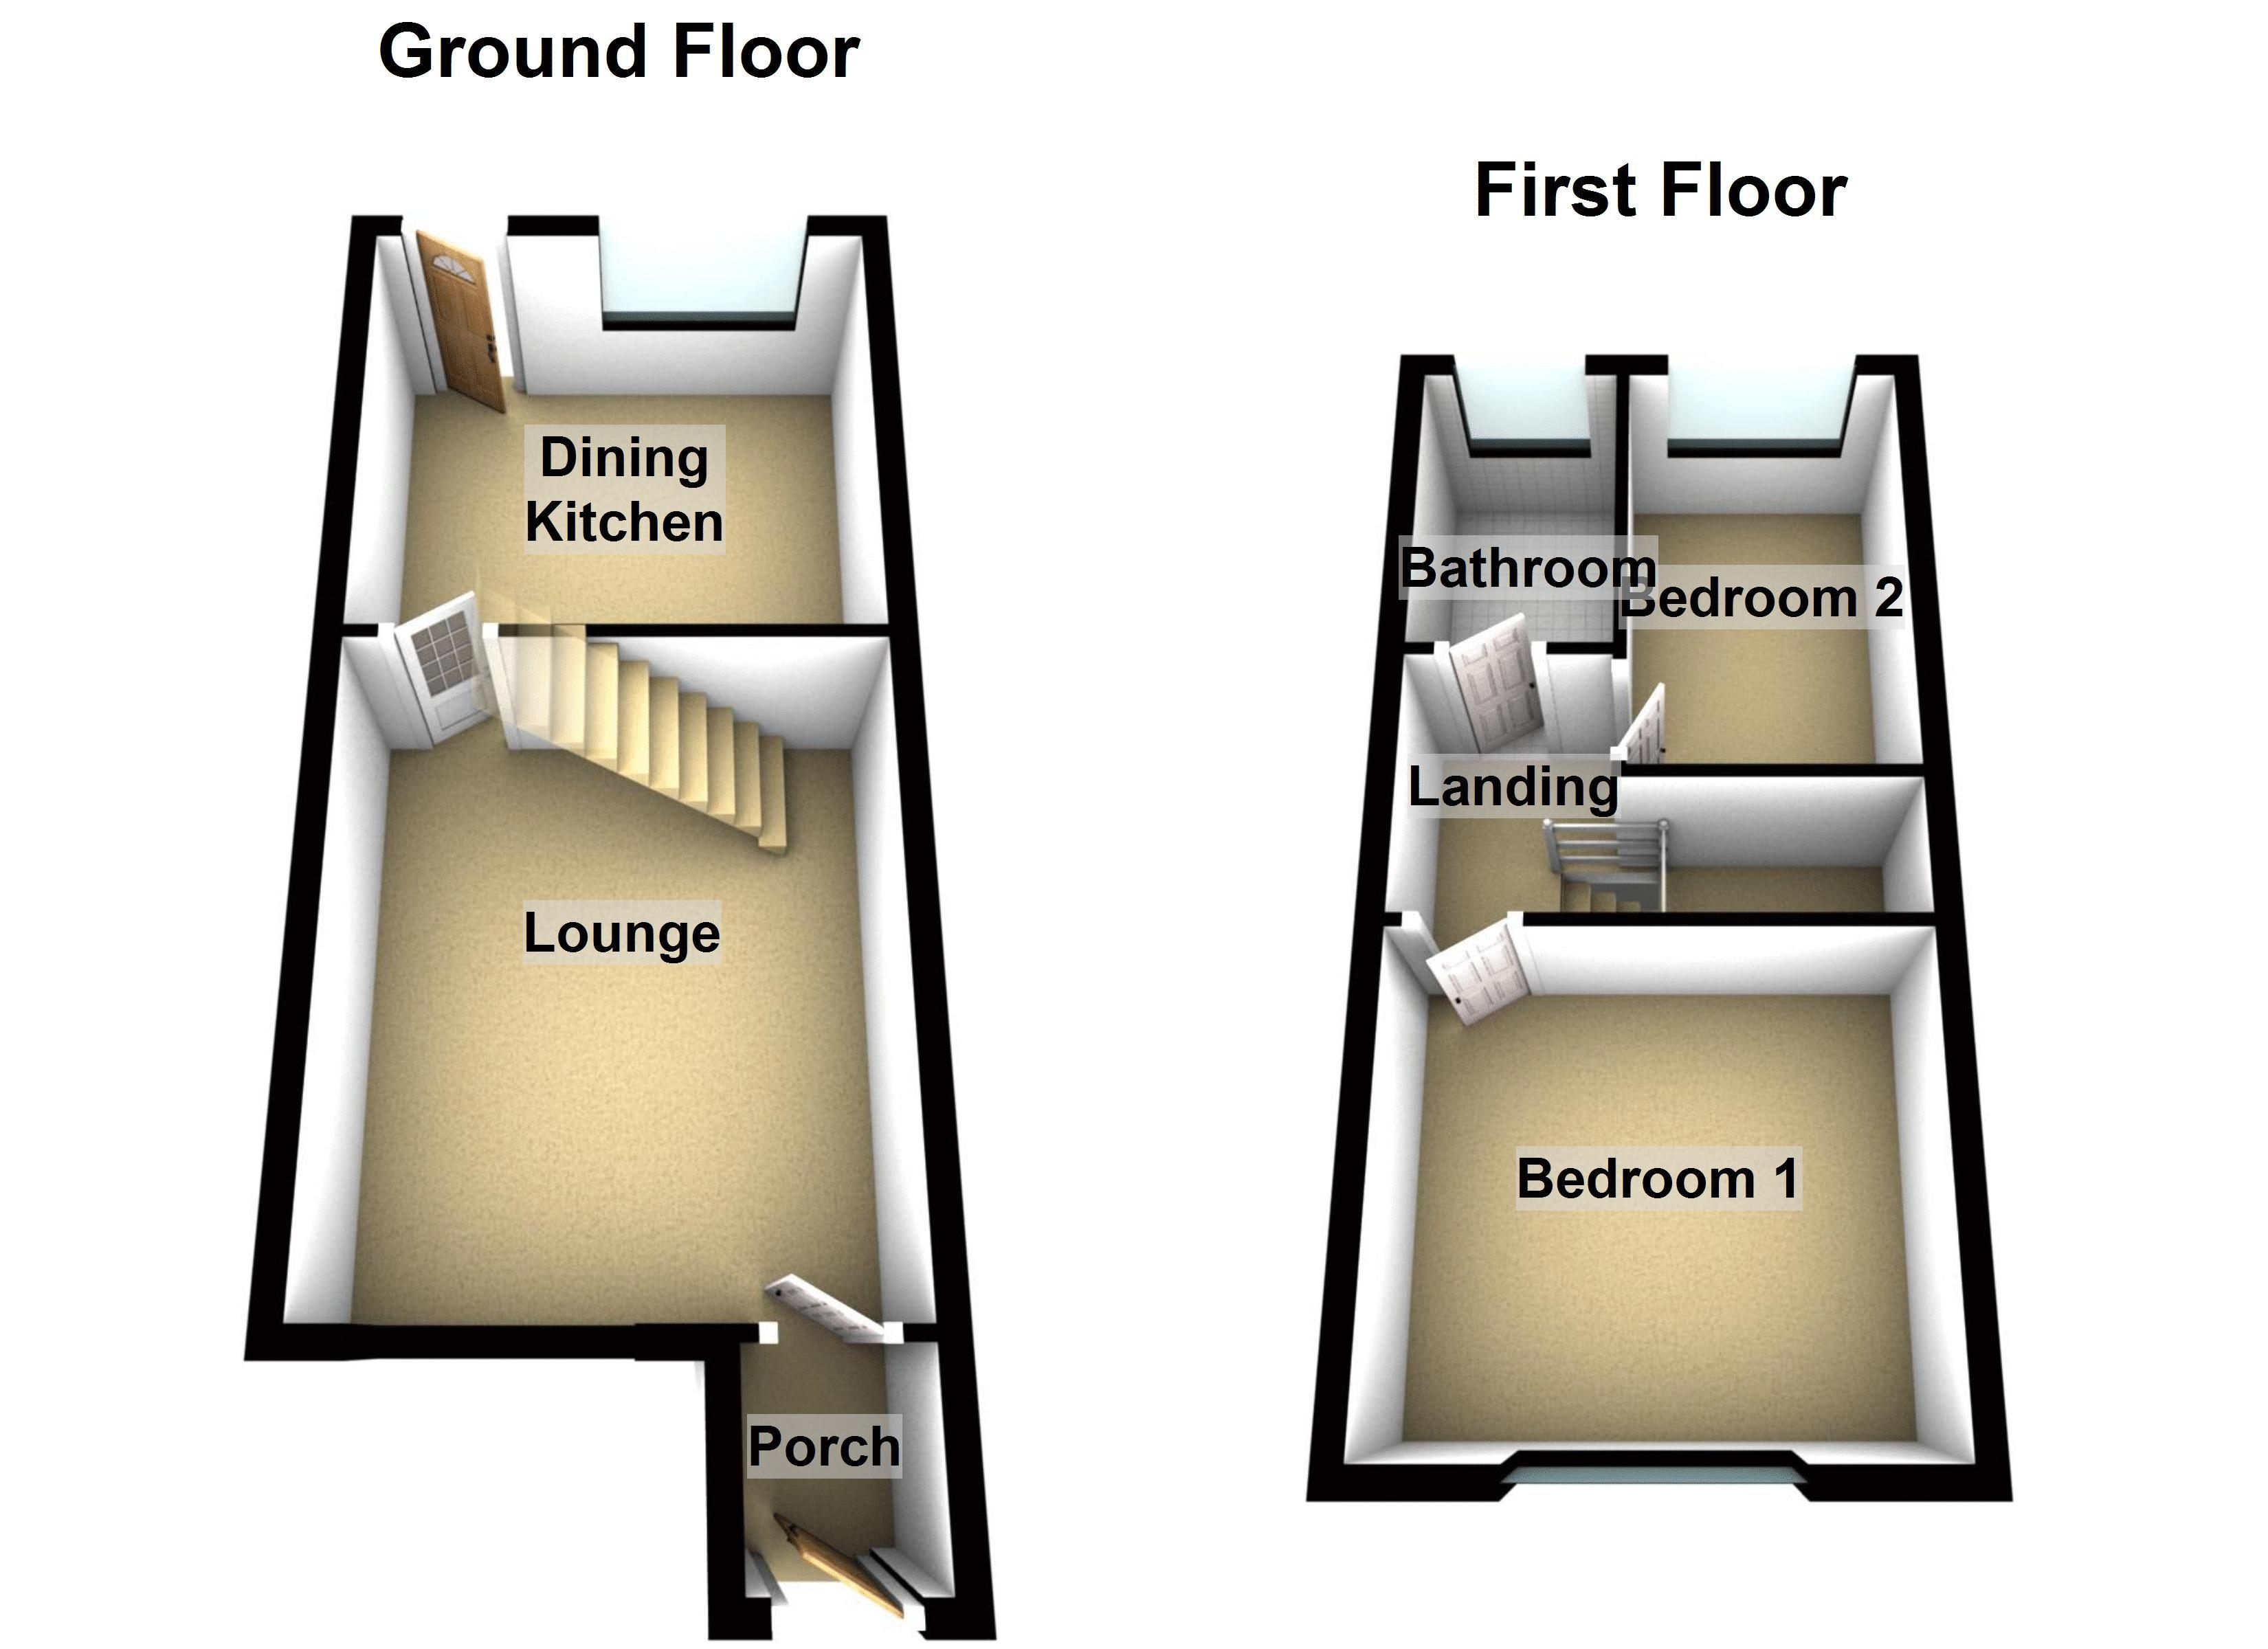 Ground/First Floor